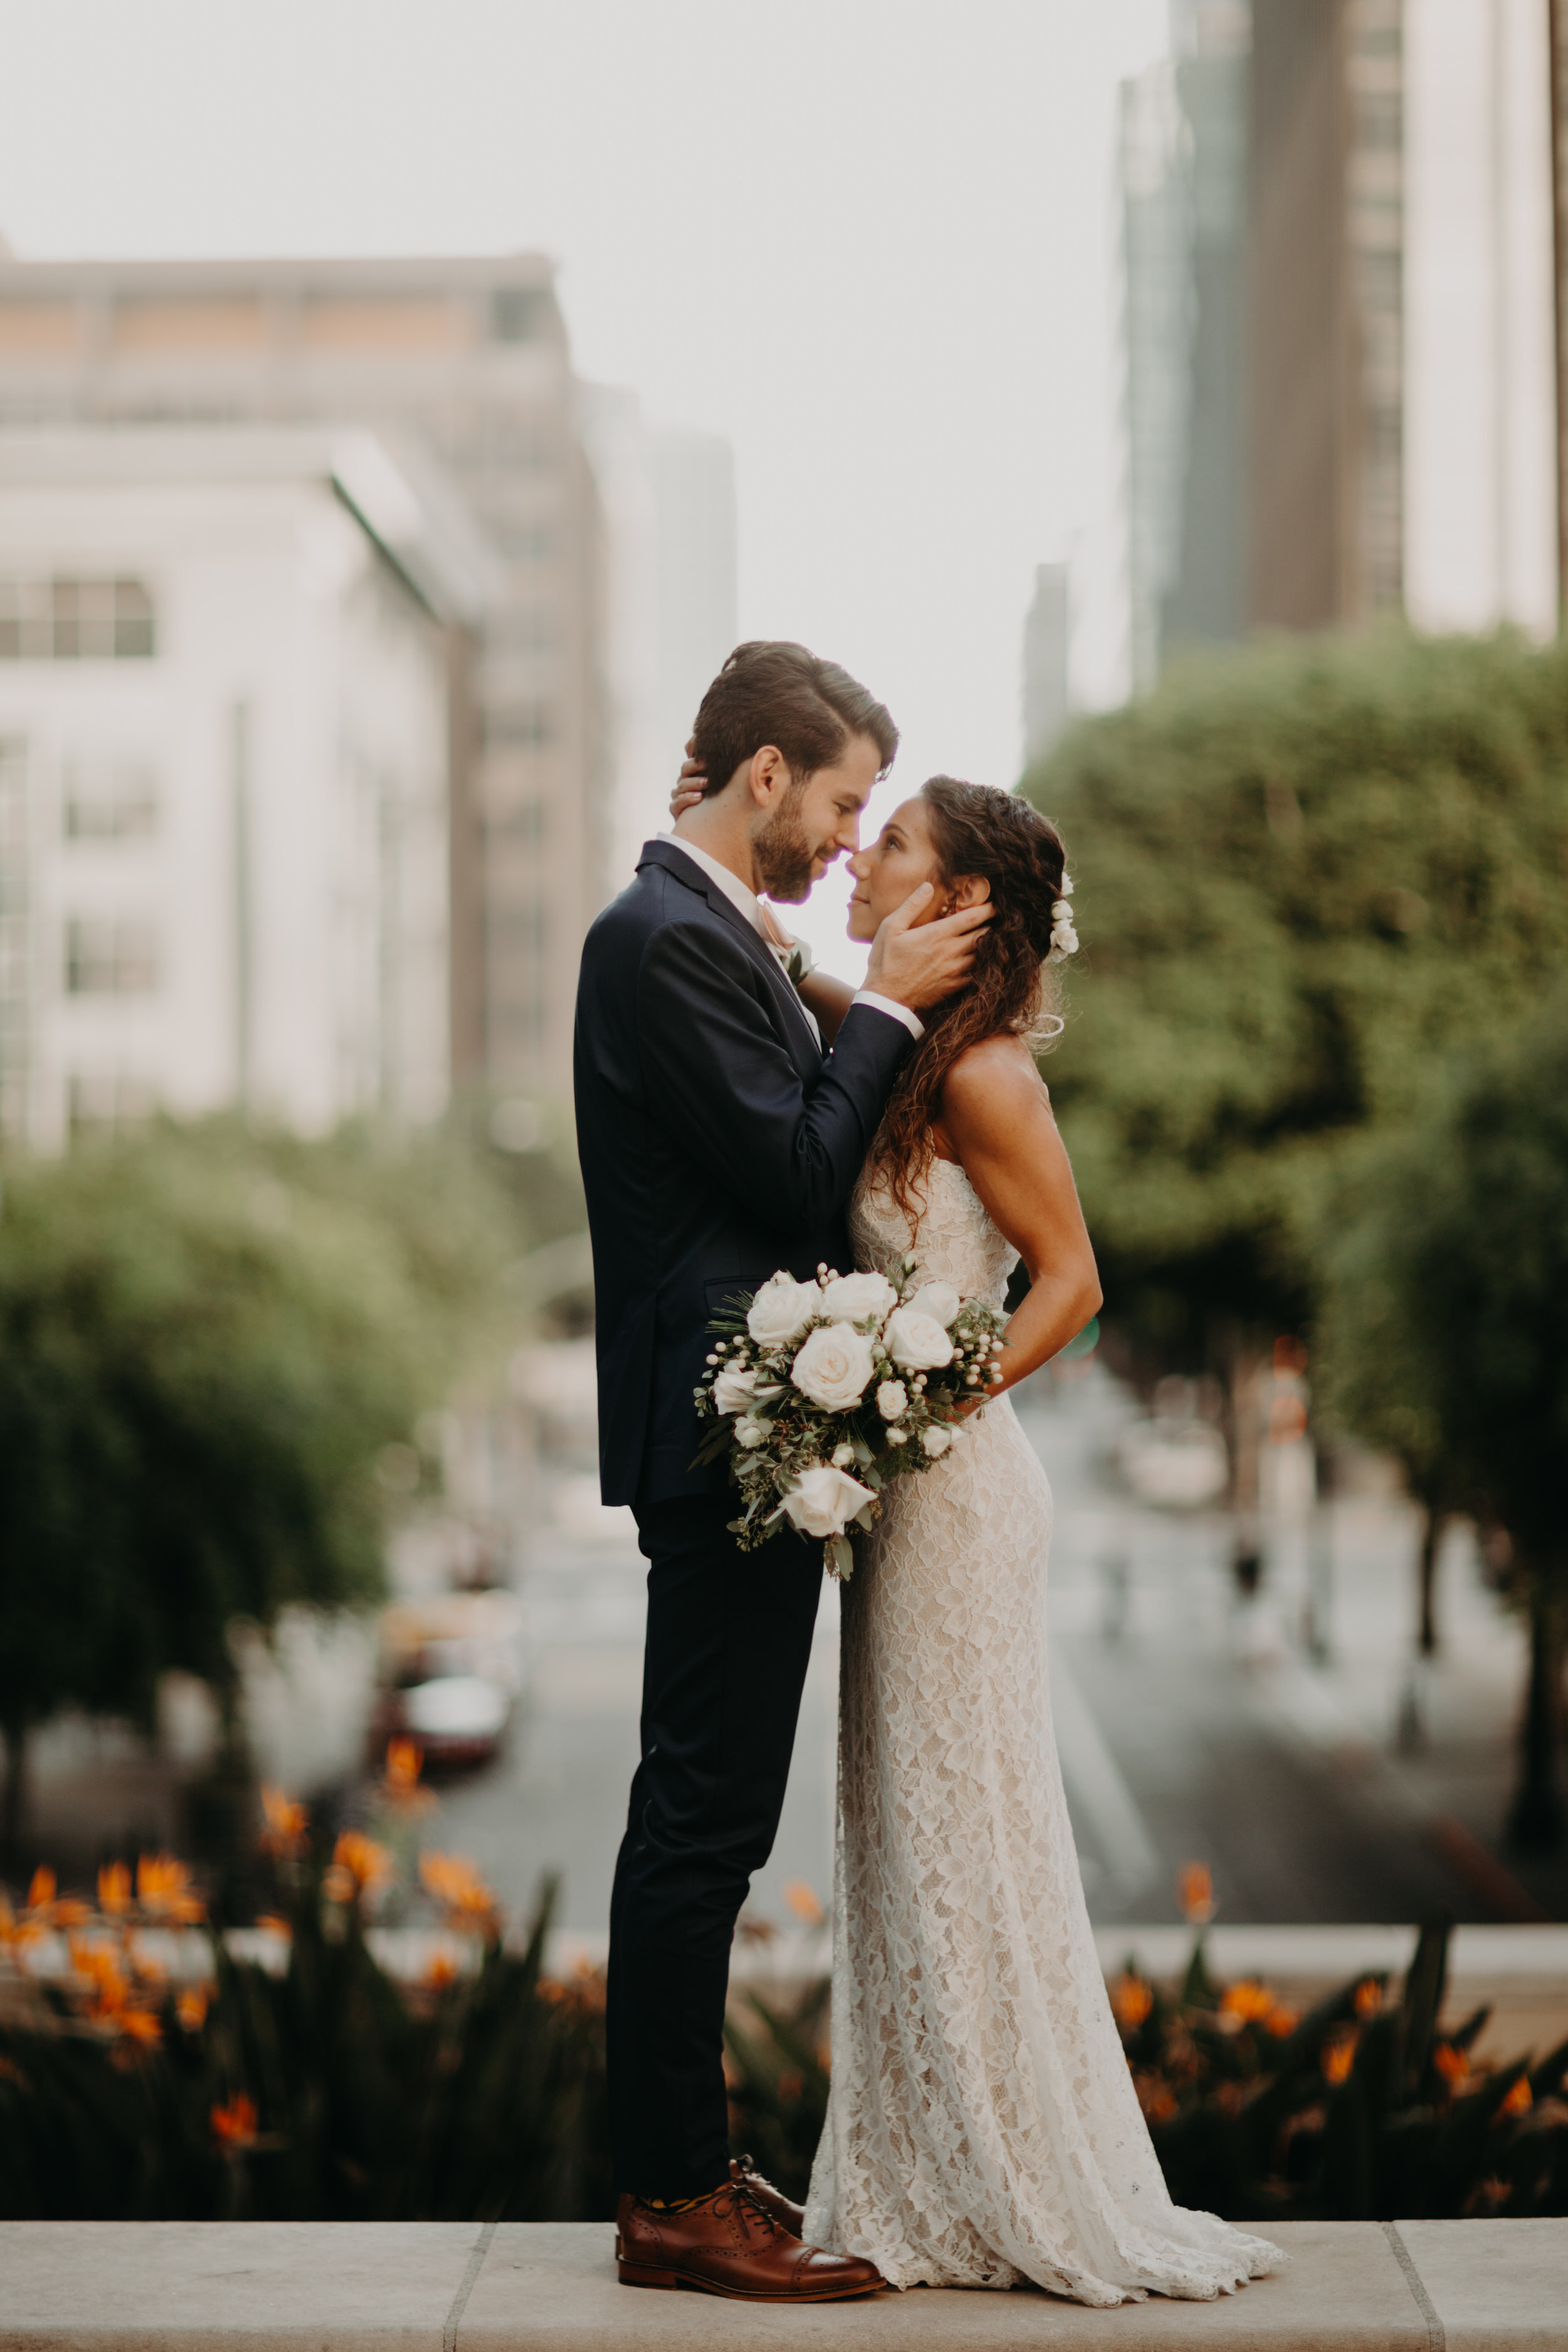 Los Angeles Library Wedding Jonathan & Amelia  Emily Magers Photography-256.jpg